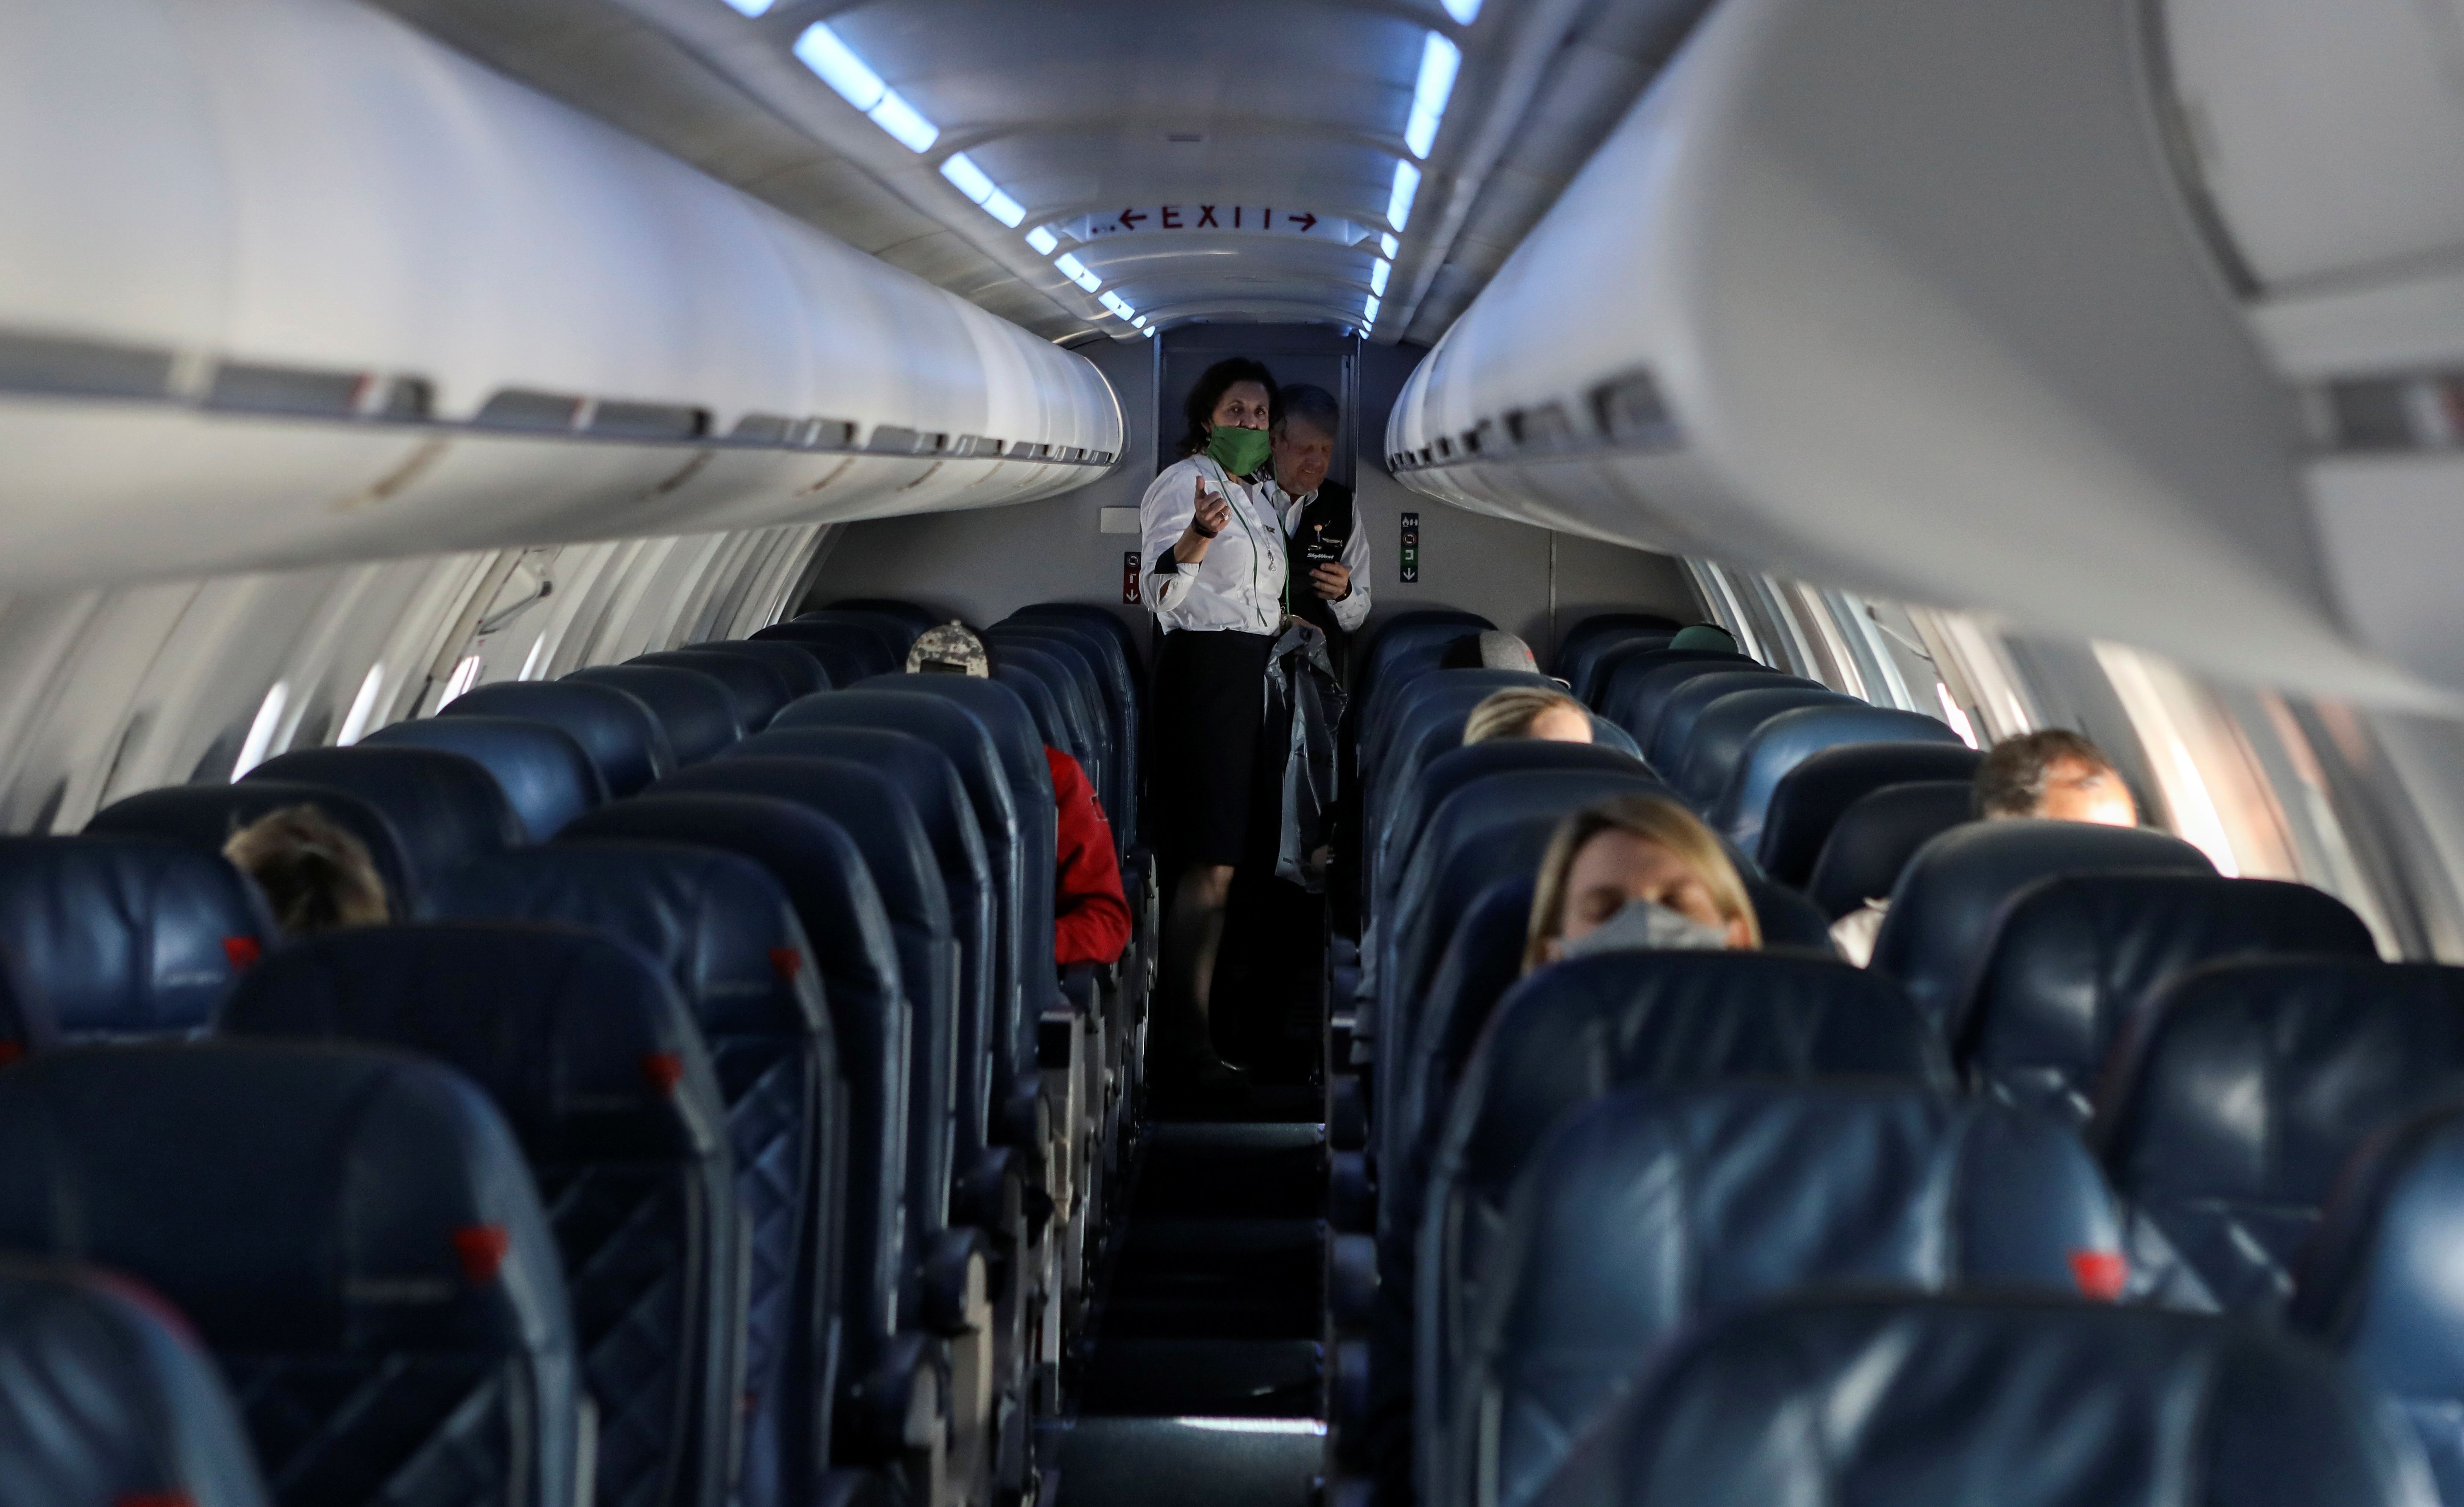 Flight attendants talk in a nearly empty cabin on a Delta Airlines flight operated by SkyWest Airlines as travel has cutback, amid concerns of the coronavirus disease (COVID-19), during a flight departing from Salt Lake City, Utah, U.S. April 11, 2020. REUTERS/Jim Urquhart